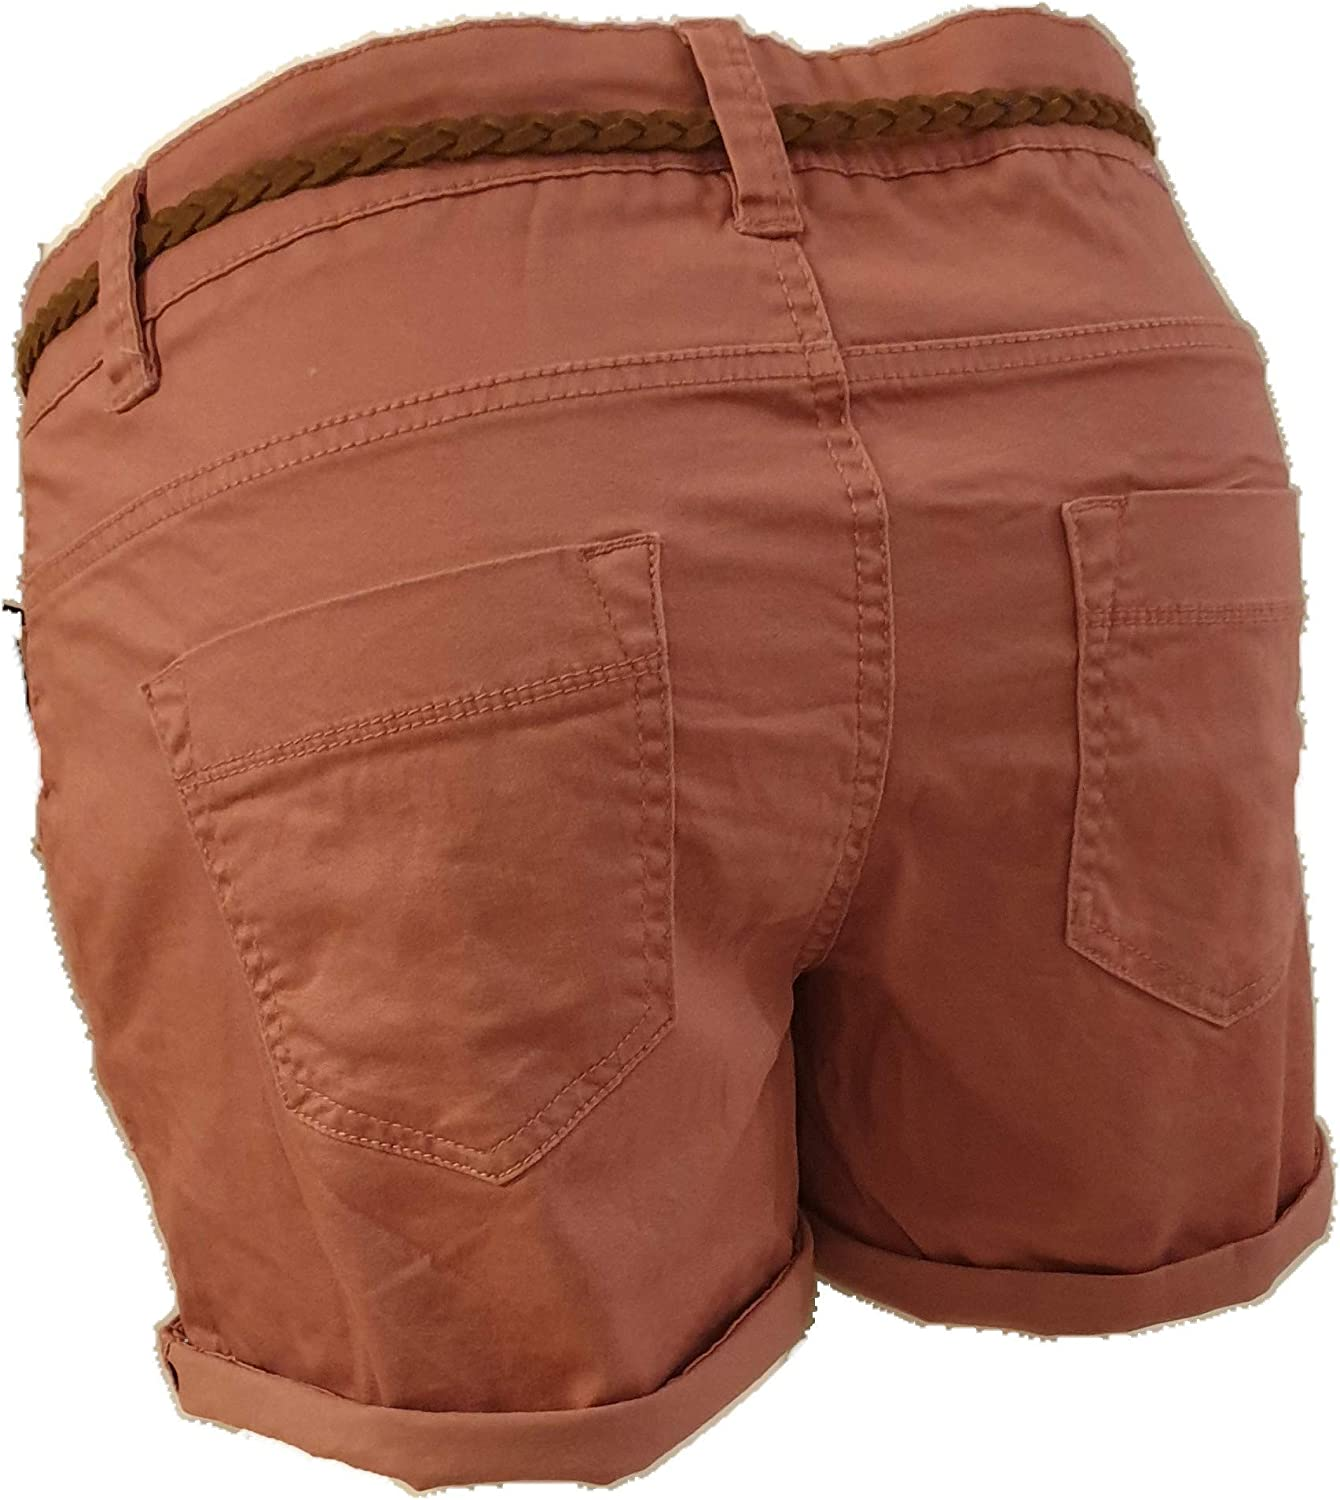 con Cintura Intrecciata Soft Washed Bermuda da Donna Capri Short a Vita Bassa Eight2Nine Hot Pant